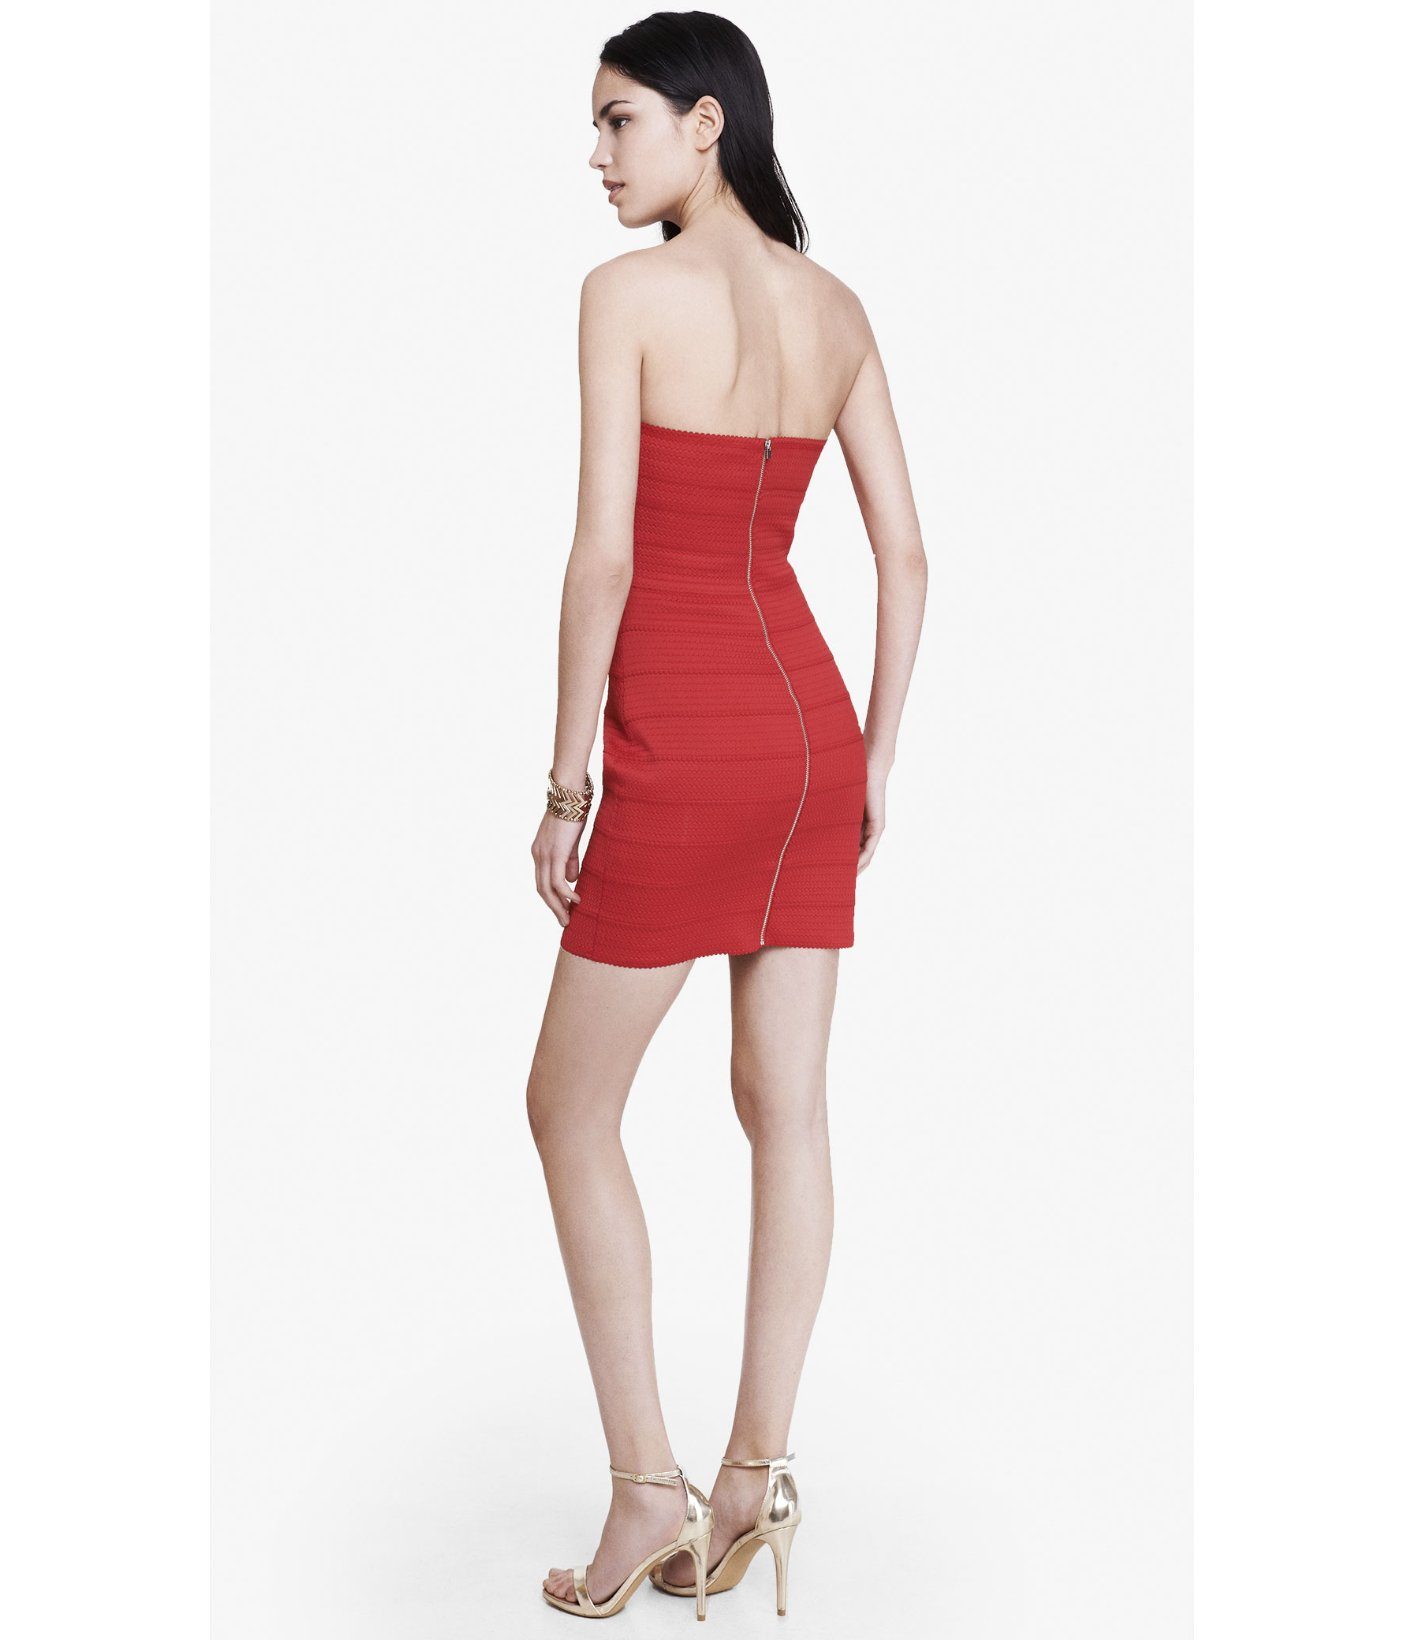 Strapless Cocktail Dress Red Express   Dress images